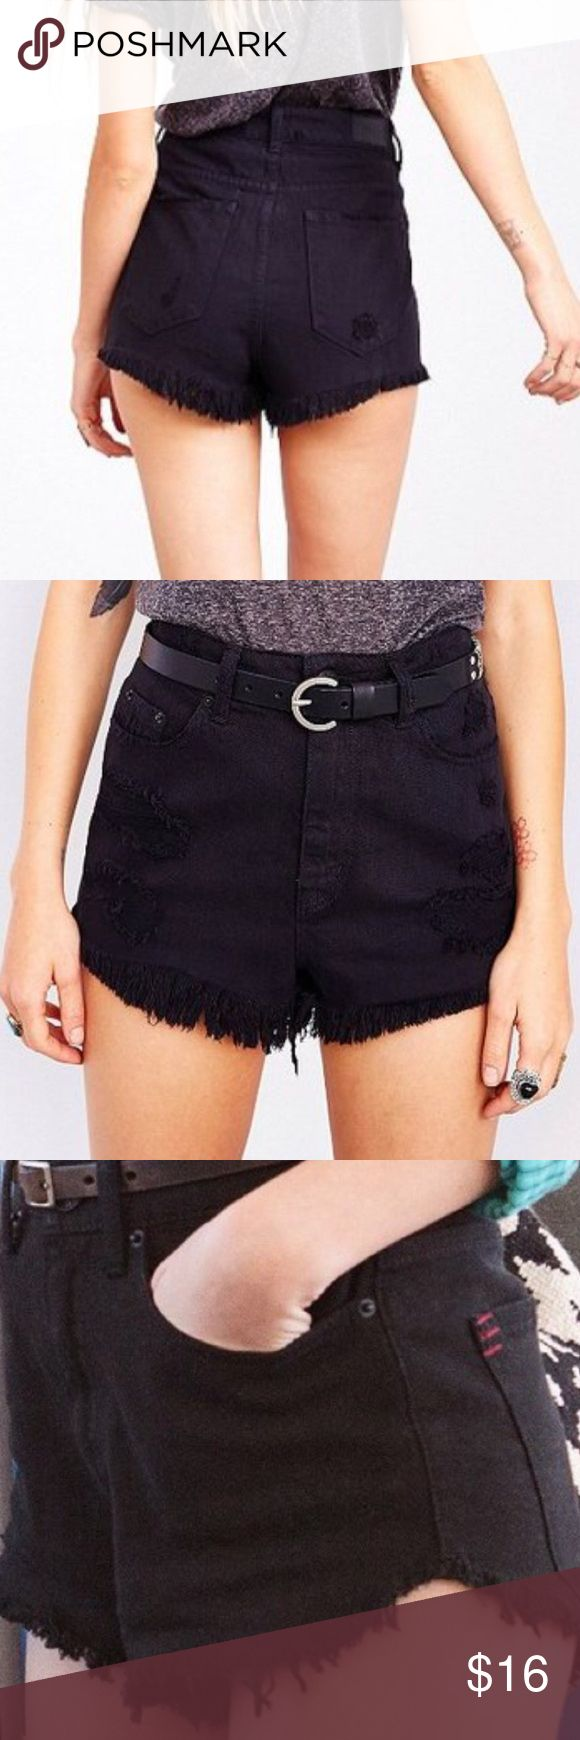 Urban Outfitters BDG super high rise cheeky shorts No fading. Never worn. Super cute high rise cheeky. Completely SOLD OUT at UO and UO online BDG Shorts